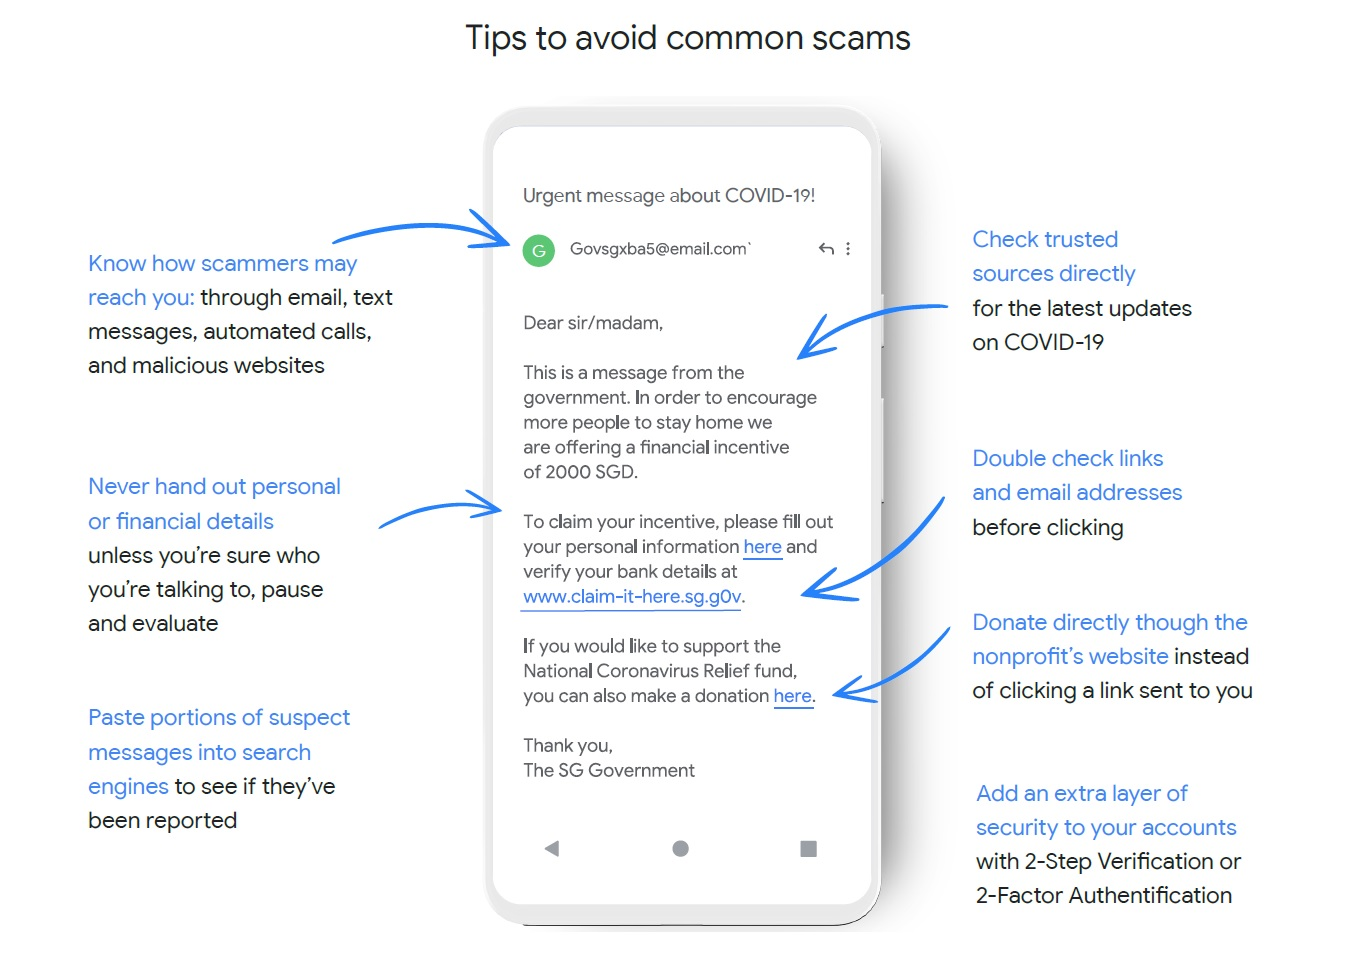 Google's tips to avoid COVID-19 online scams